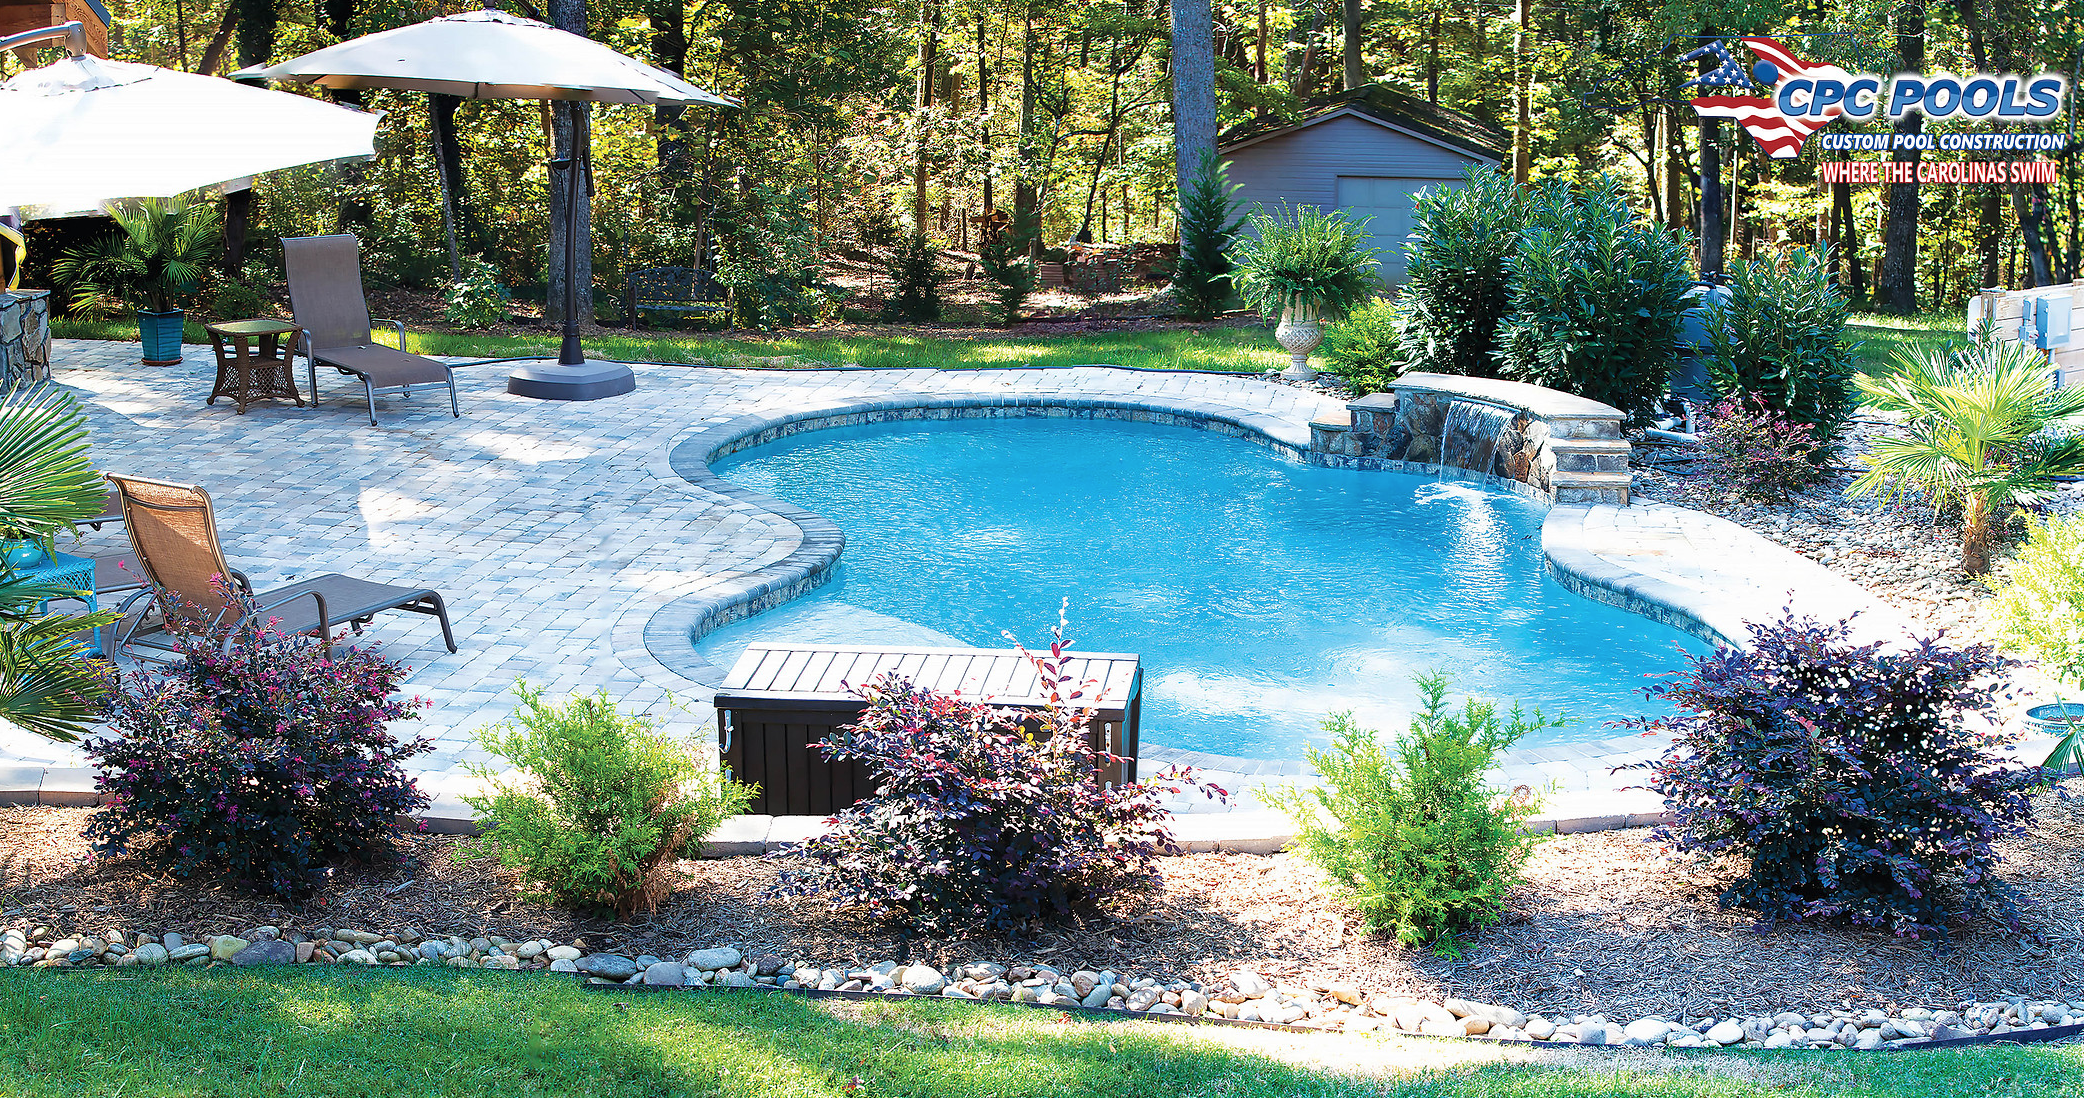 Get Your Concrete Inground Pool Built In Hickory North Carolina By Carolina Pool Consultants